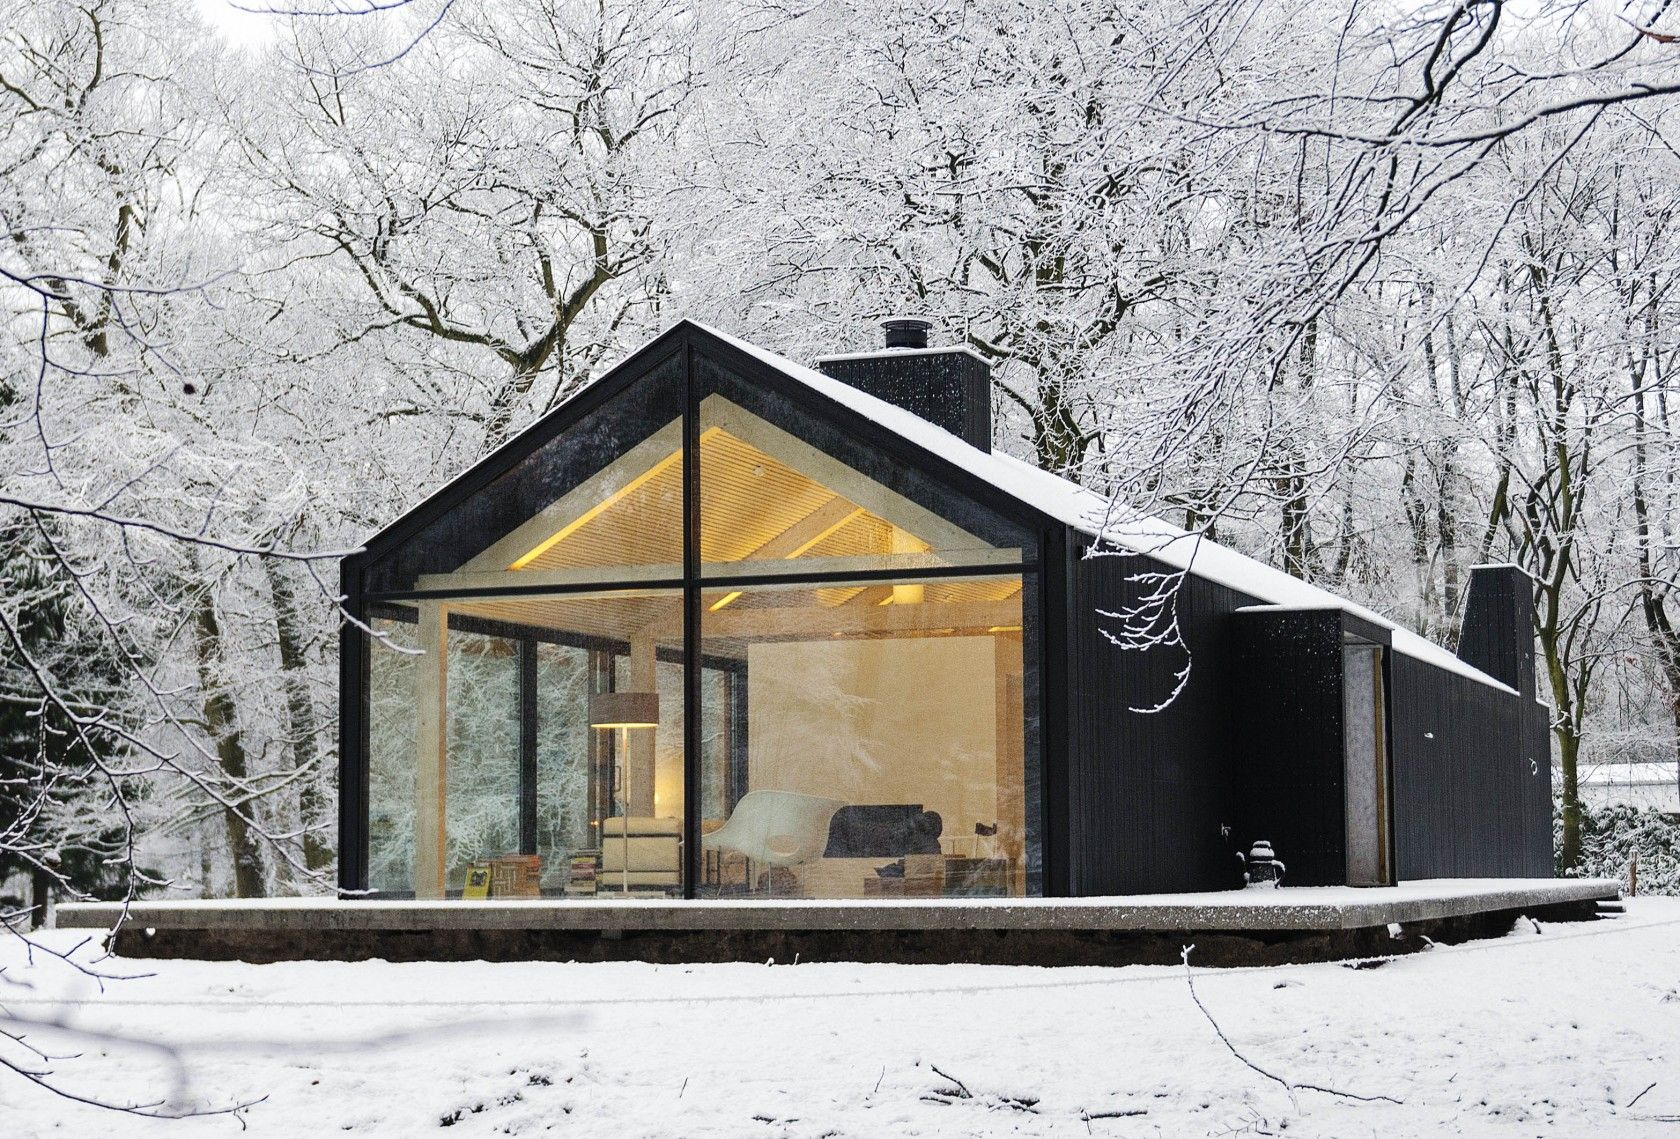 Modern Cabin Design modern design modern forest home i heart a mazing simple prefab modern Design Inspiration Modern Cabin Love Cabinlove Architecture